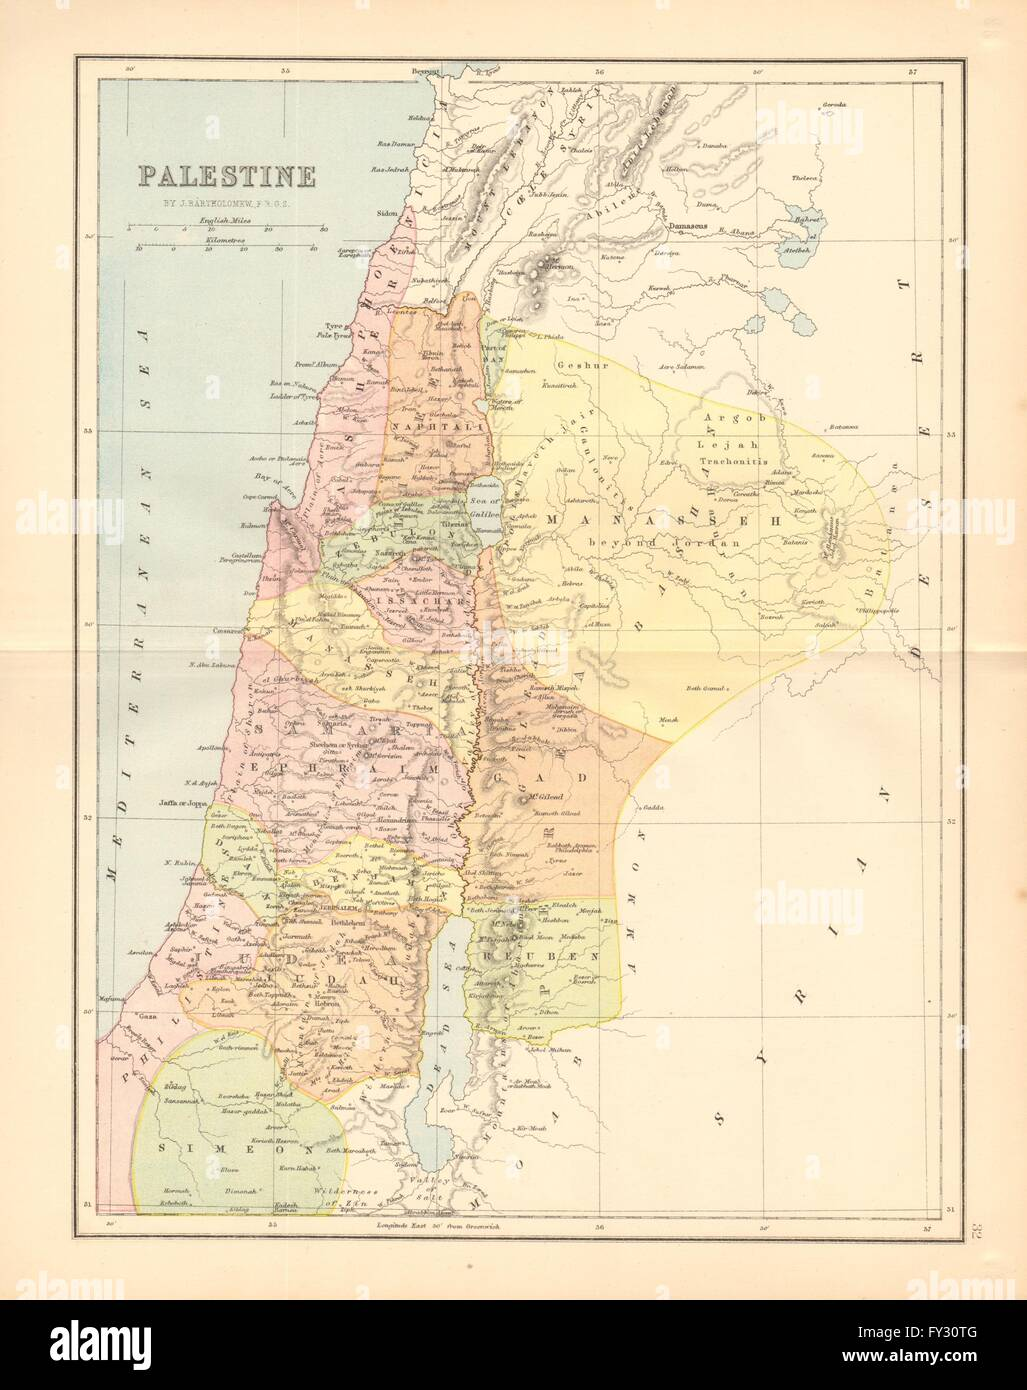 PALESTINE. 12 tribes of Israel. Judea Samaria Galilee. BARTHOLOMEW on aelia capitolina map, israeli settlement, middle east map, mount carmel map, sinai peninsula map, iudaea province map, philistia map, jezreel valley map, west bank map, the decapolis map, laodicean church map, mount gerizim, jerusalem map, jordan river map, tyre map, judea and samaria, sea of galilee, old testament holy land map, damascus map, kingdom of judah, tell beit mirsim map, the whole state map, dead sea map, antonia fortress map,